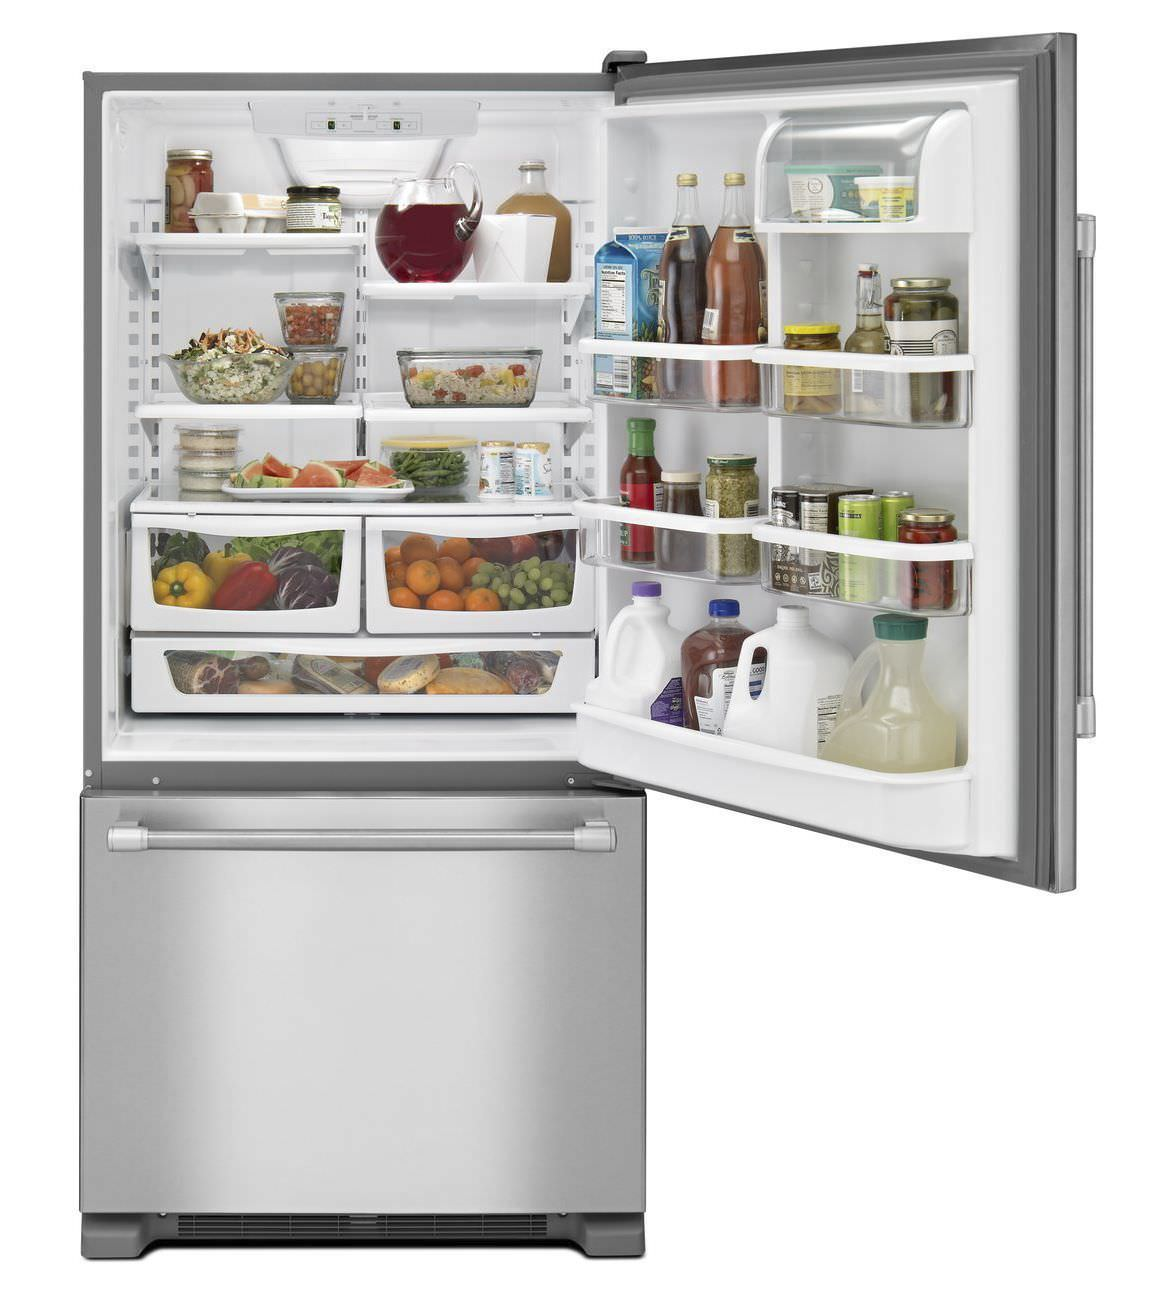 American Fridge Freezer With Drawers Part - 38: Residential Refrigerator-freezer / With Drawer / Stainless Steel /  Energy-efficient - MBF1958DEM